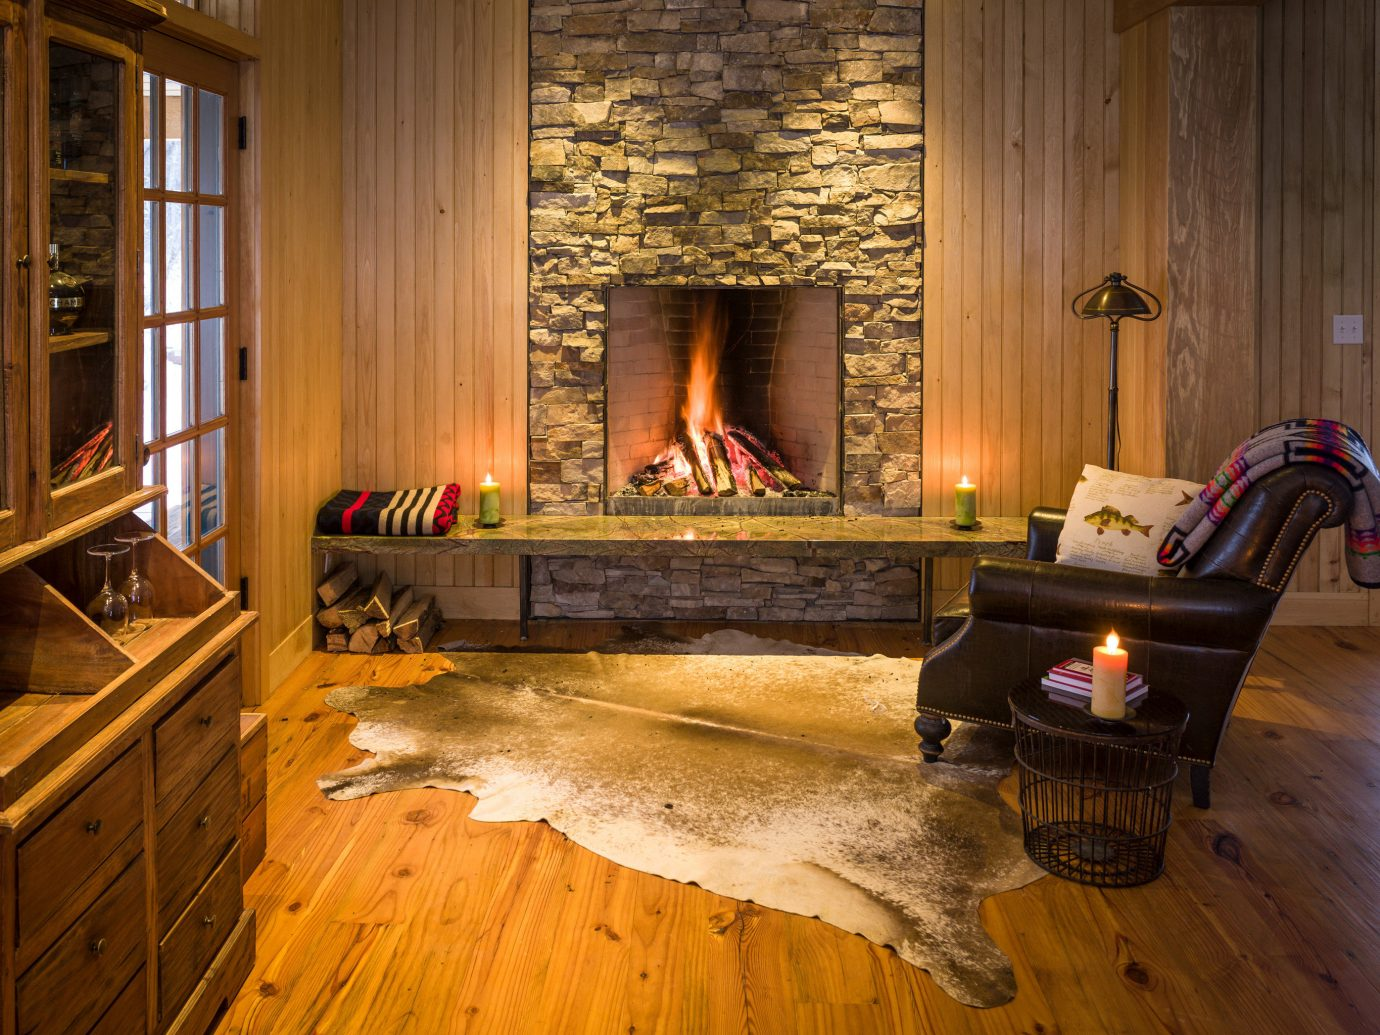 Adventure Country Forest Glamping Living Mountains Outdoors + Adventure Rustic Weekend Getaways Wellness indoor floor room building window property Fireplace home wood hearth hardwood living room house furniture estate cottage wooden wood flooring interior design farmhouse flooring hard